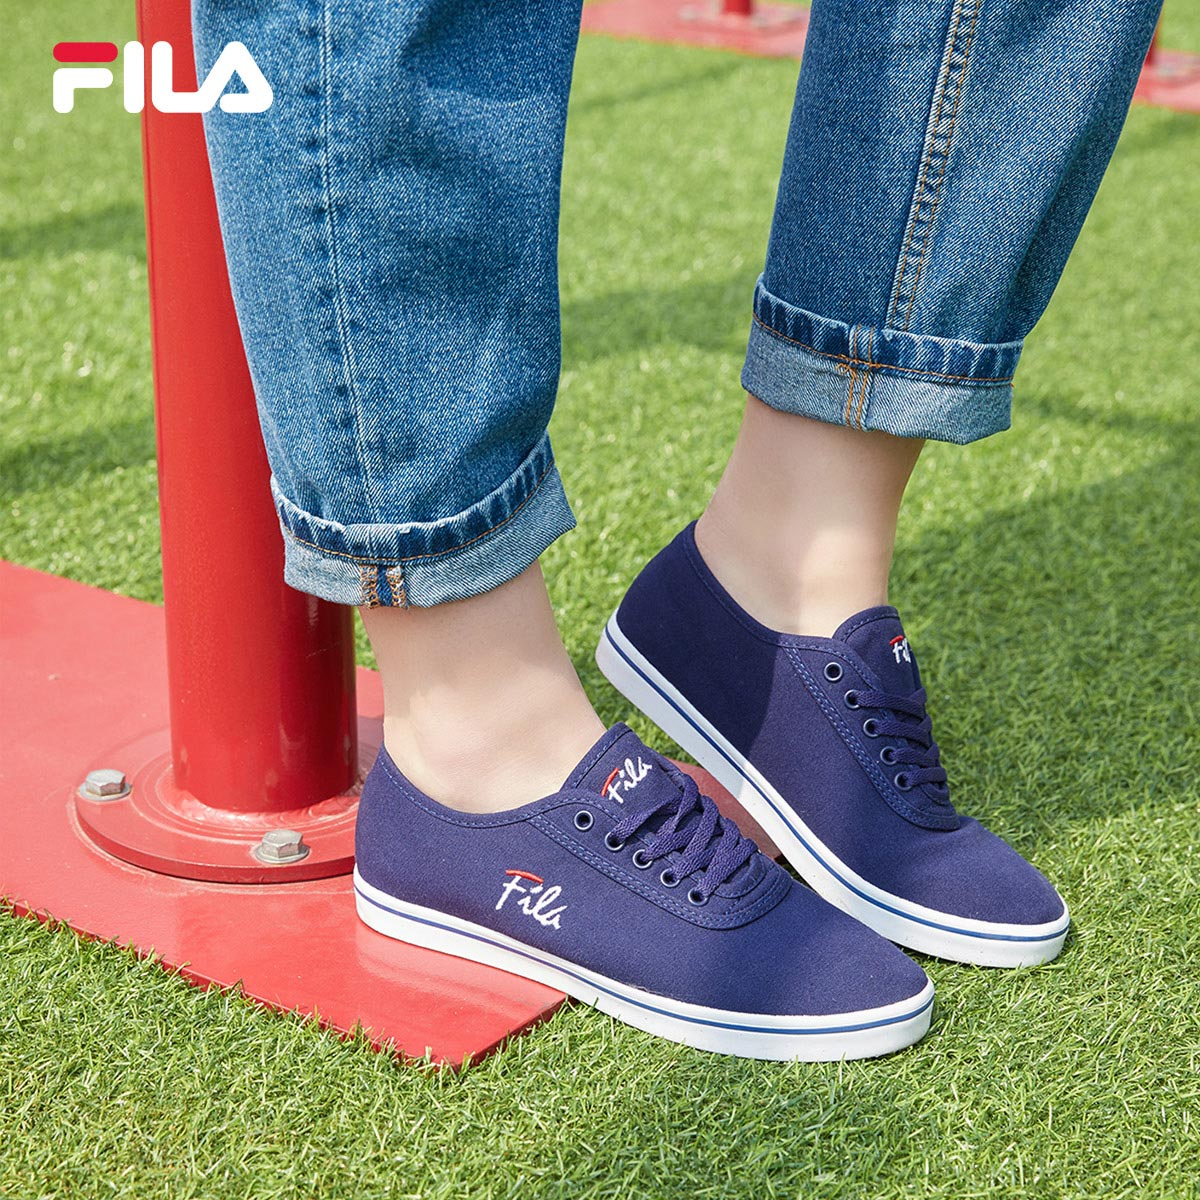 4ca3c15db91f FILA Fila canvas shoes women s shoes 2018 autumn new low help students  Korean version of the